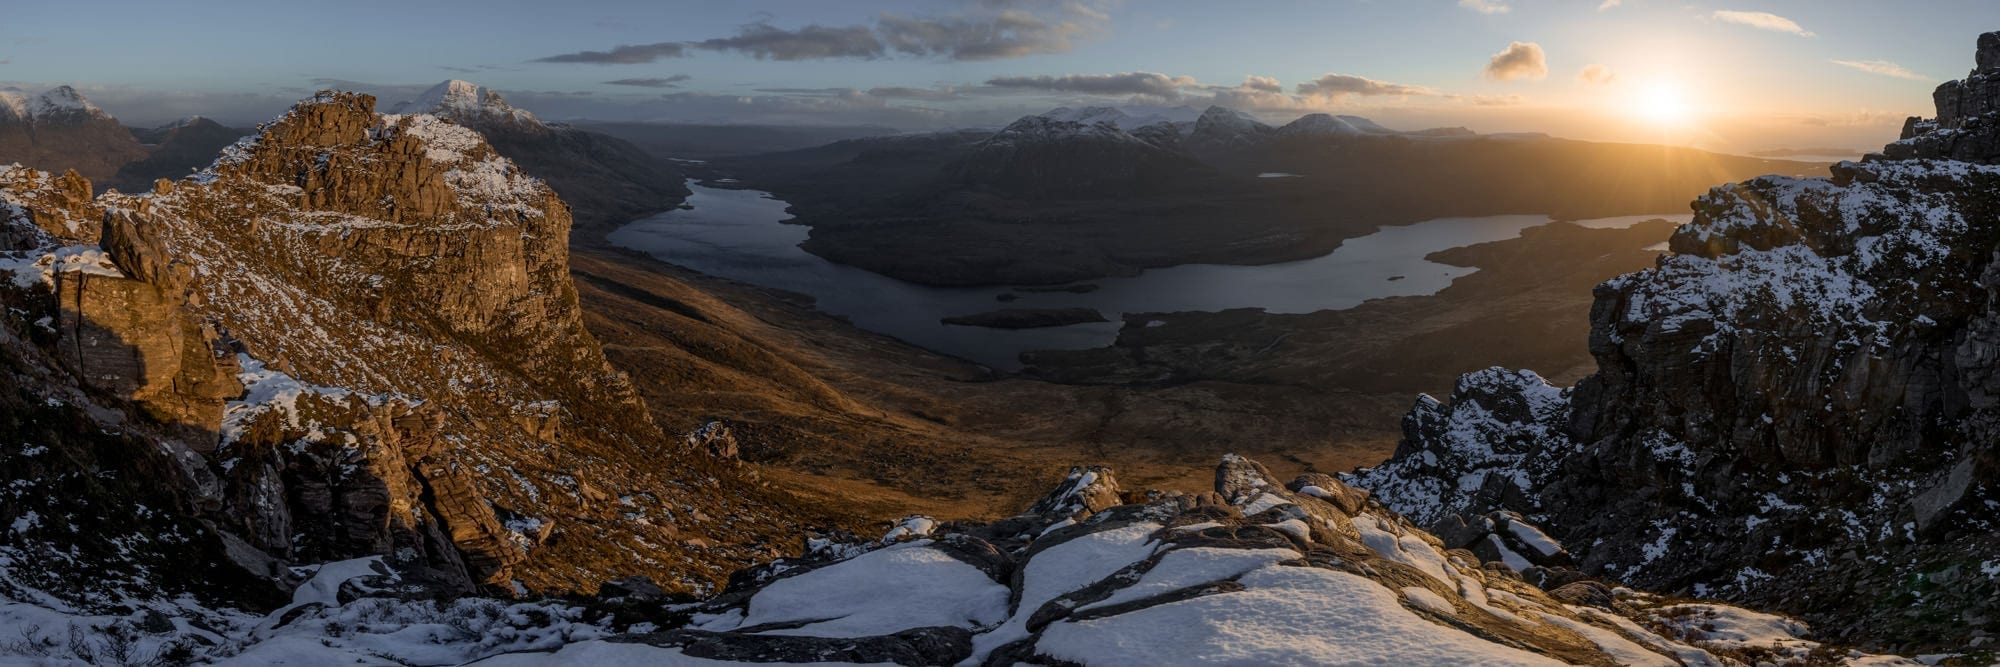 Stac Polliadh Panoramic - Scotland Photography Workshops